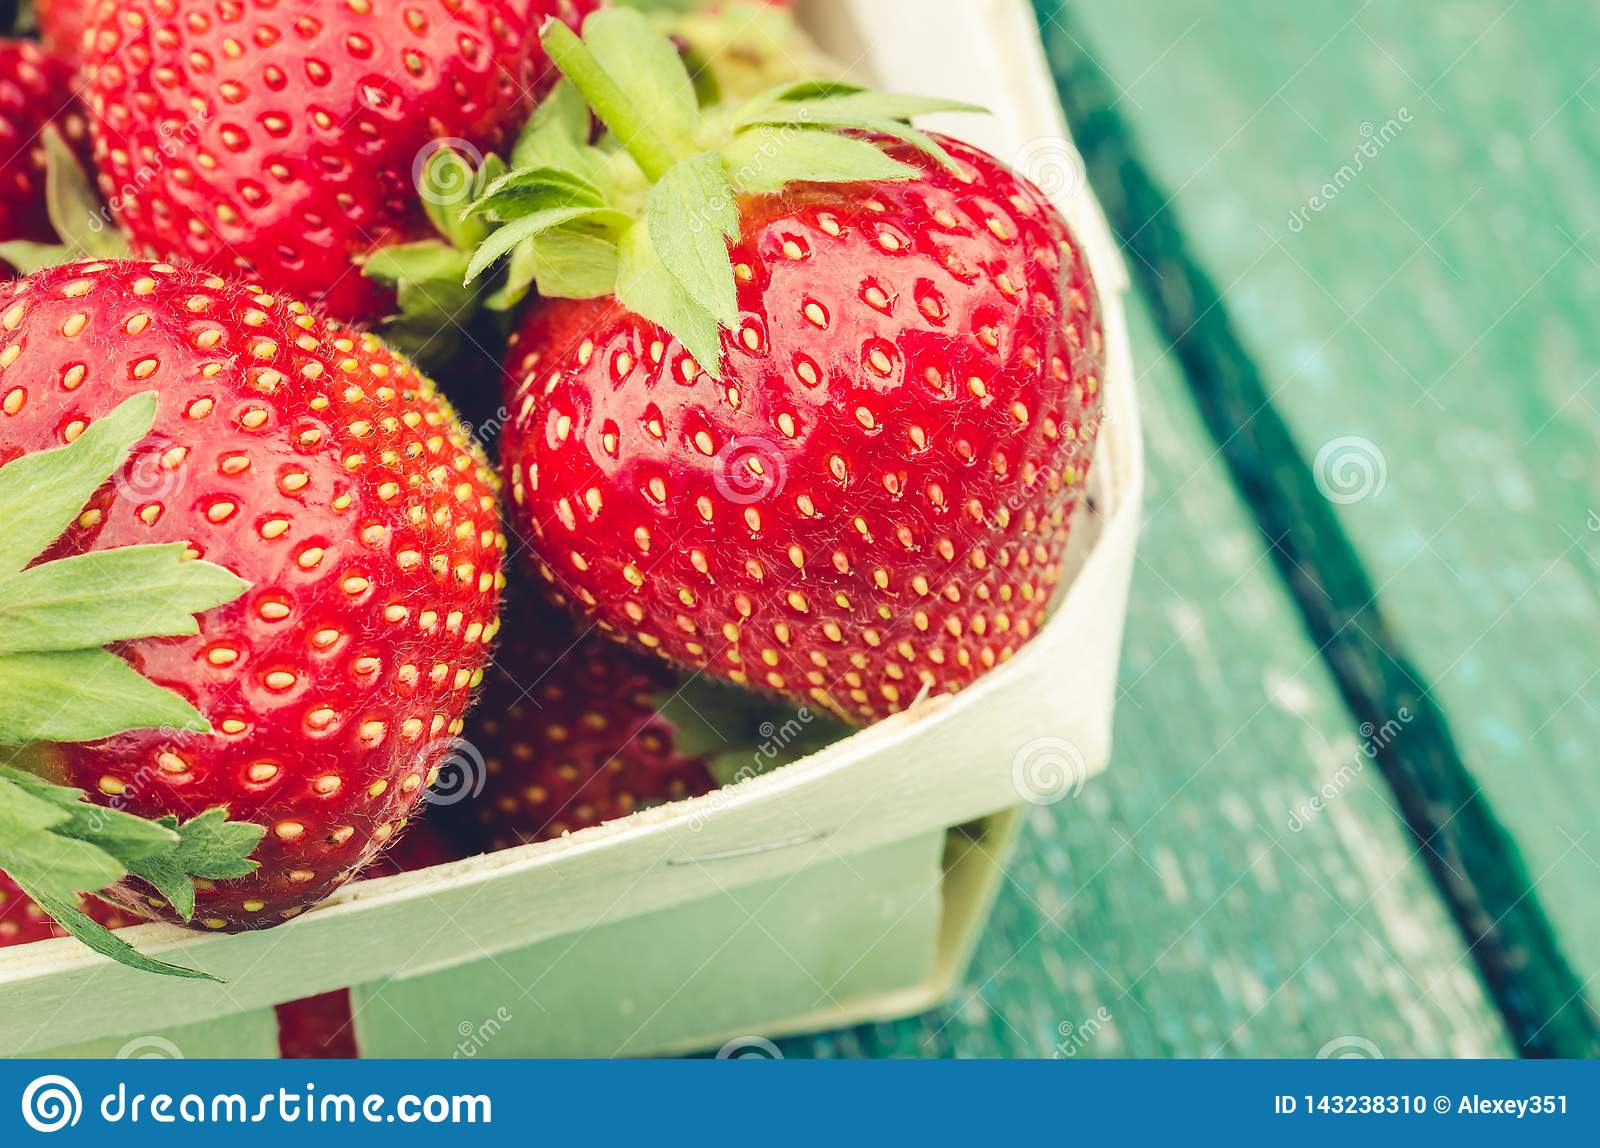 Strawberry. fresh berries of strawberry/fresh berries of strawberry on wooden background closeup. Top view